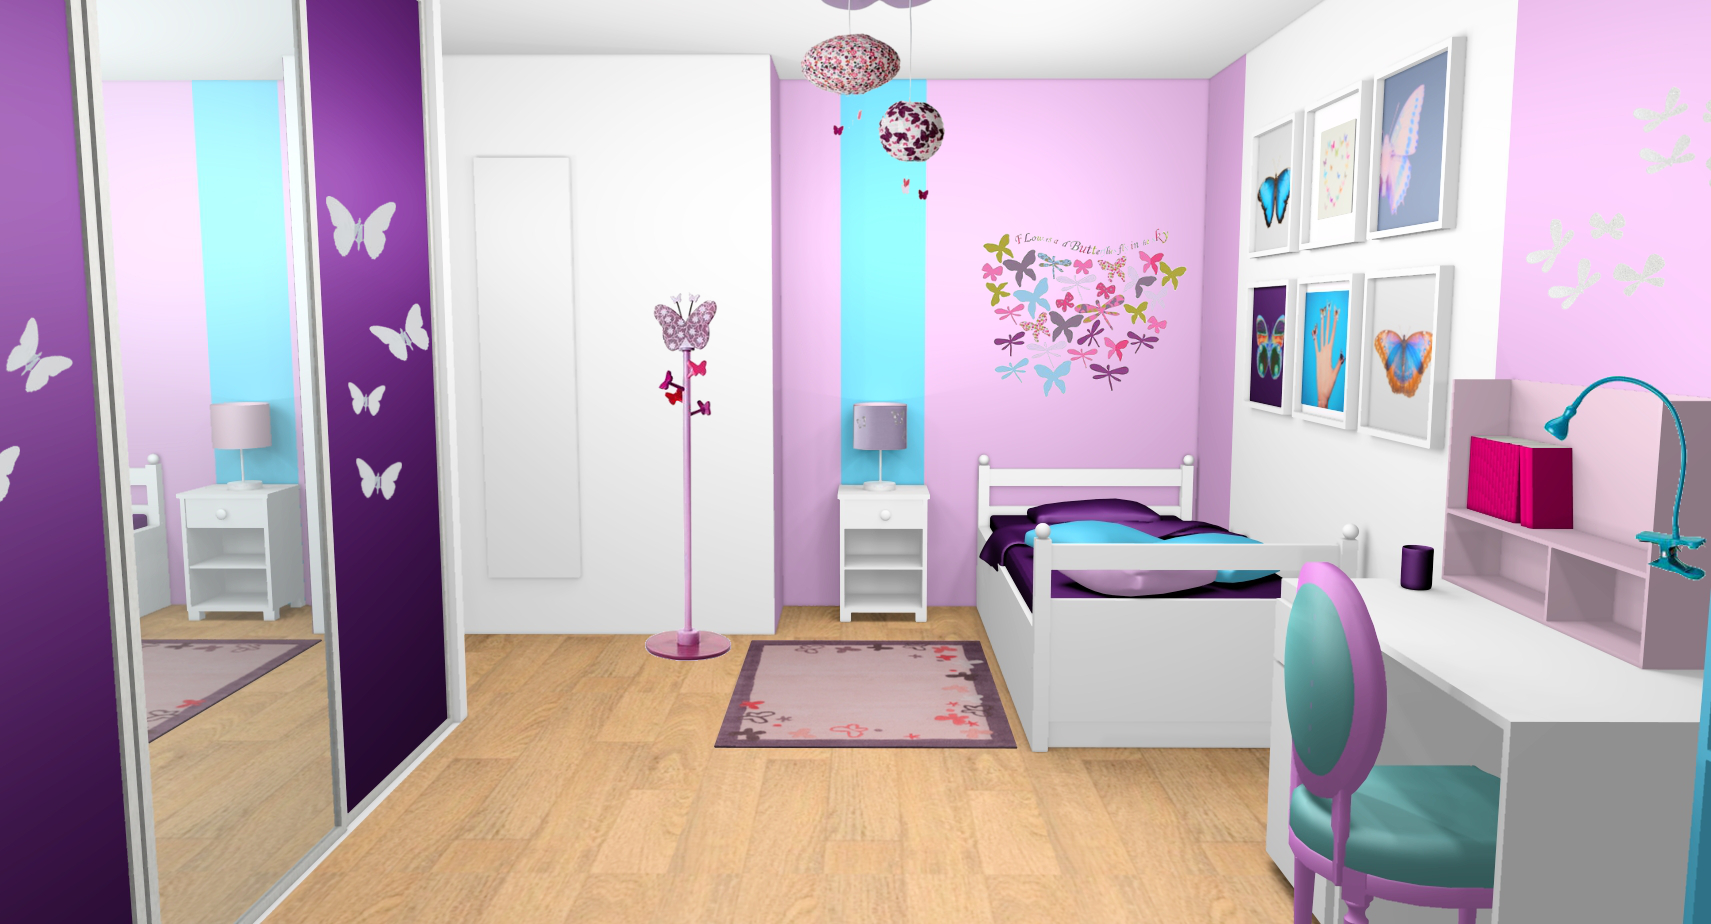 chambre a coucher blanche et mauve. Black Bedroom Furniture Sets. Home Design Ideas